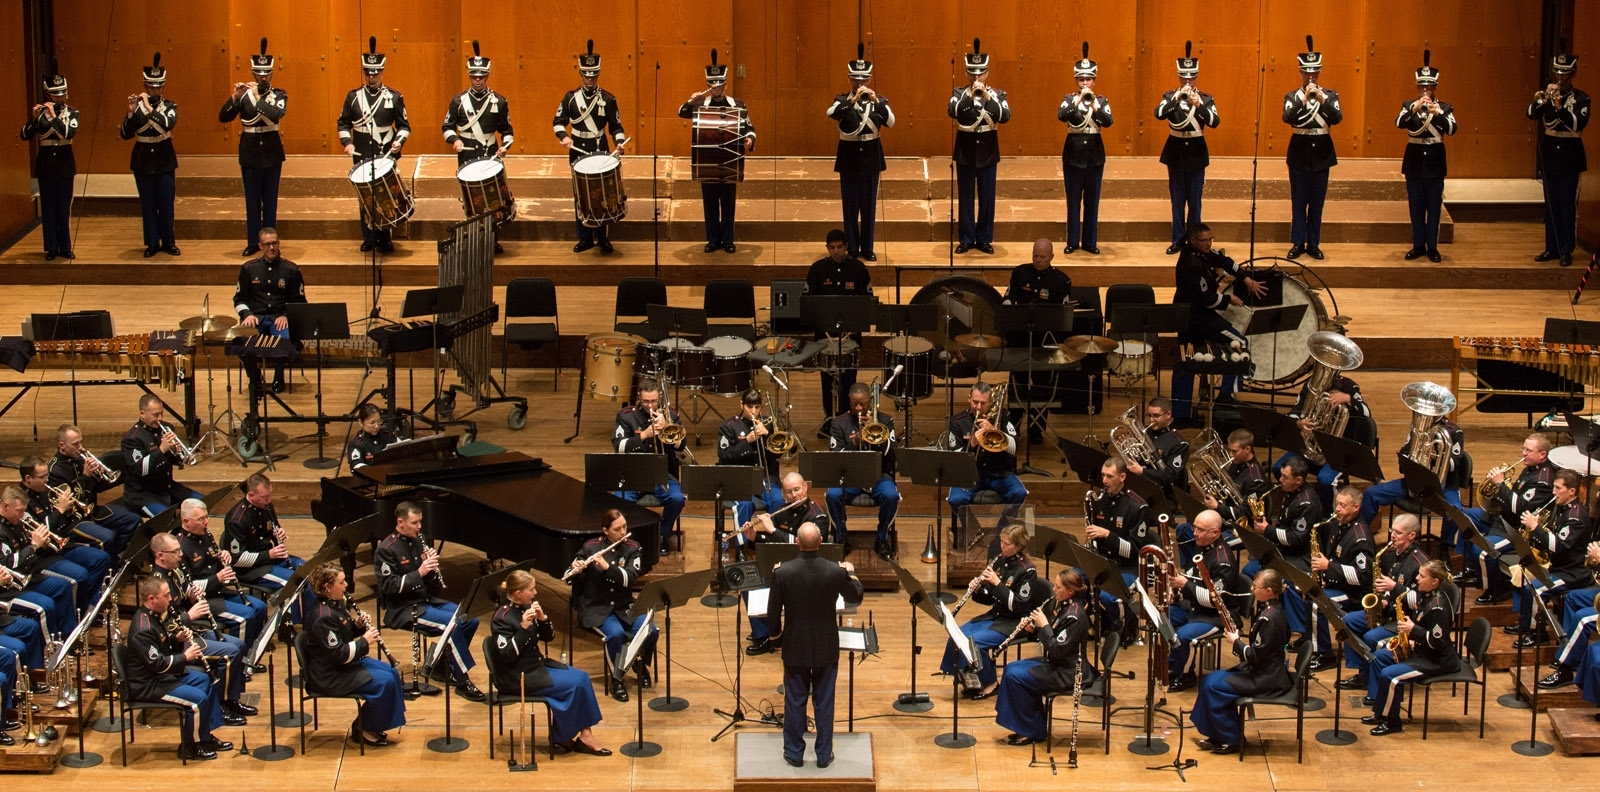 West Point Band is among the performers appearing at the Long Island State Veterans Home Concert Under the Stars.